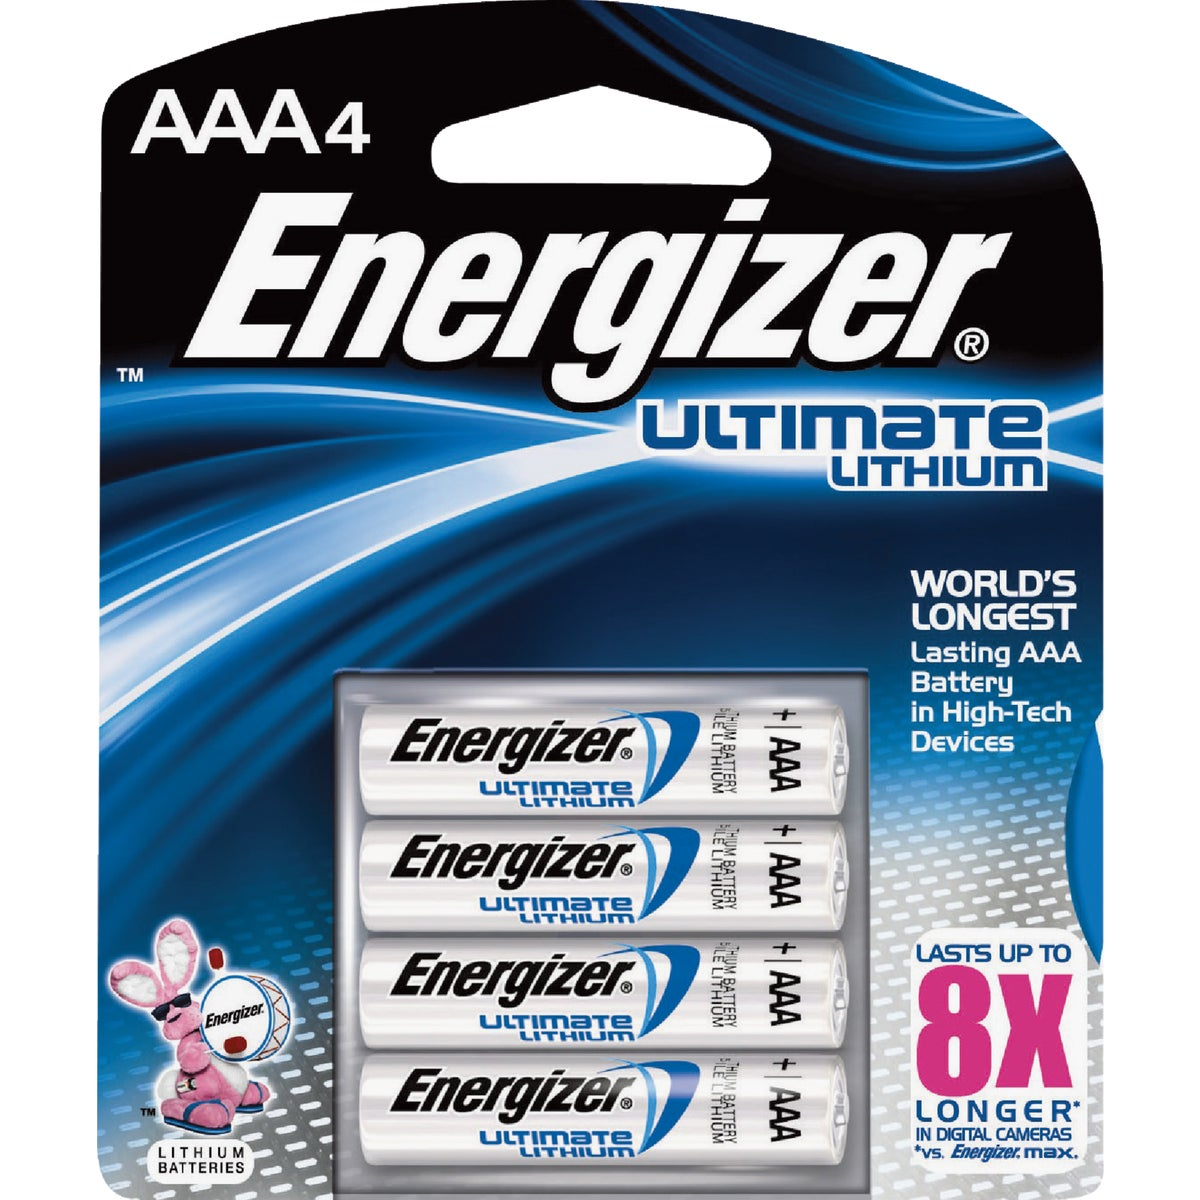 4PK AAA ULT LITHIUM BTRY - L92BP-4 by Energizer